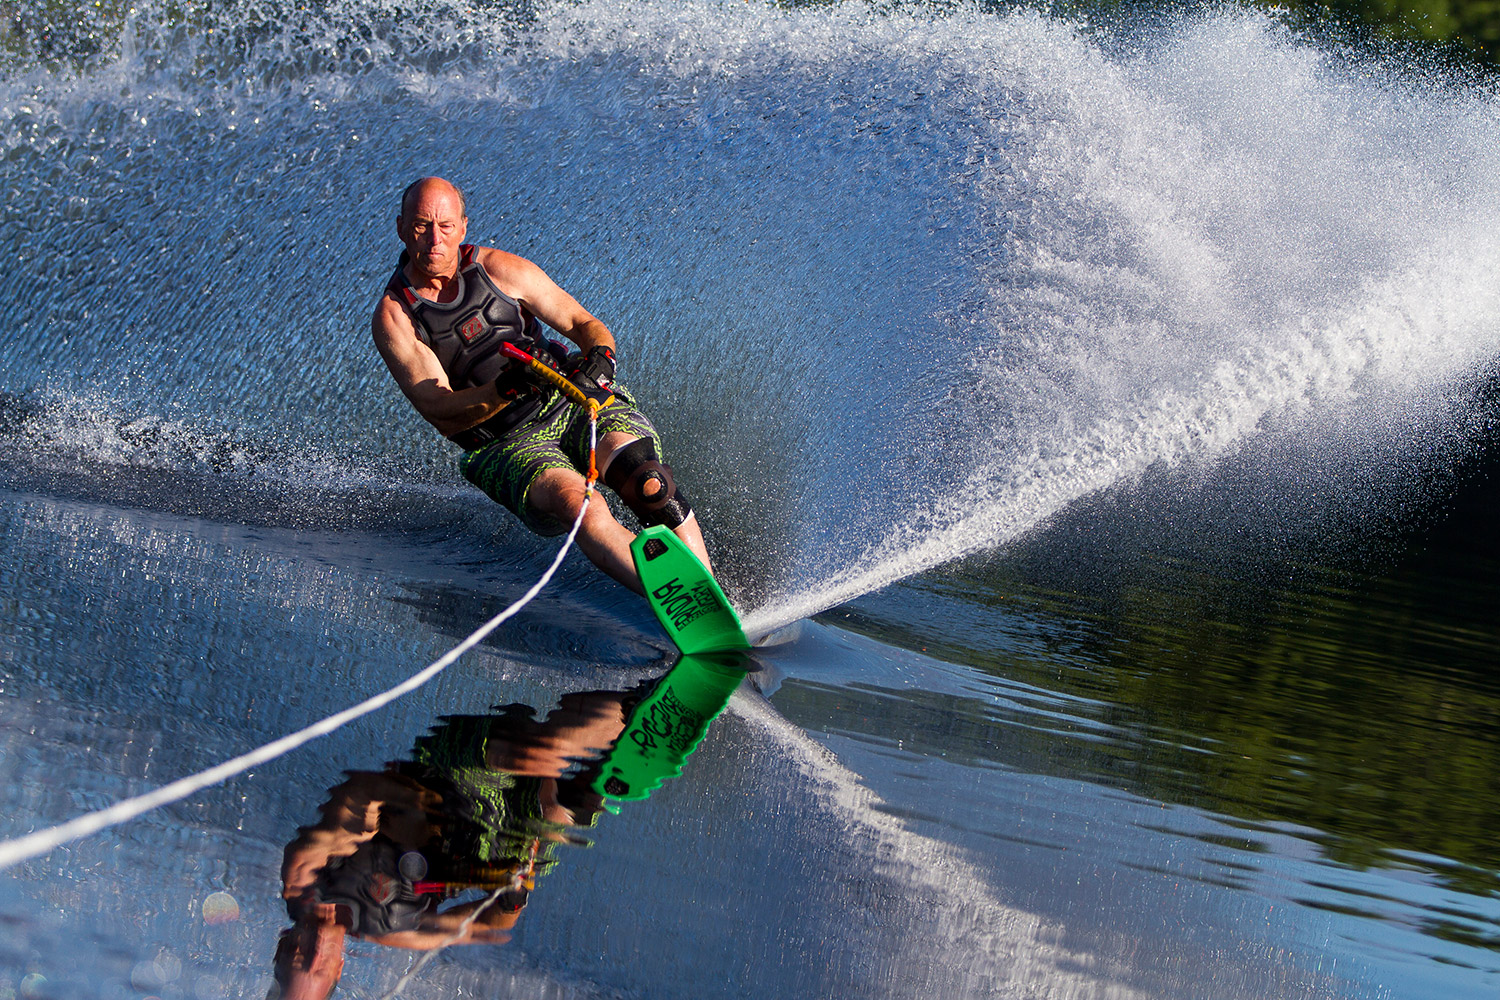 Water Ski Chair Pete Alderman Still Water Skiing At Age 79 The Portland